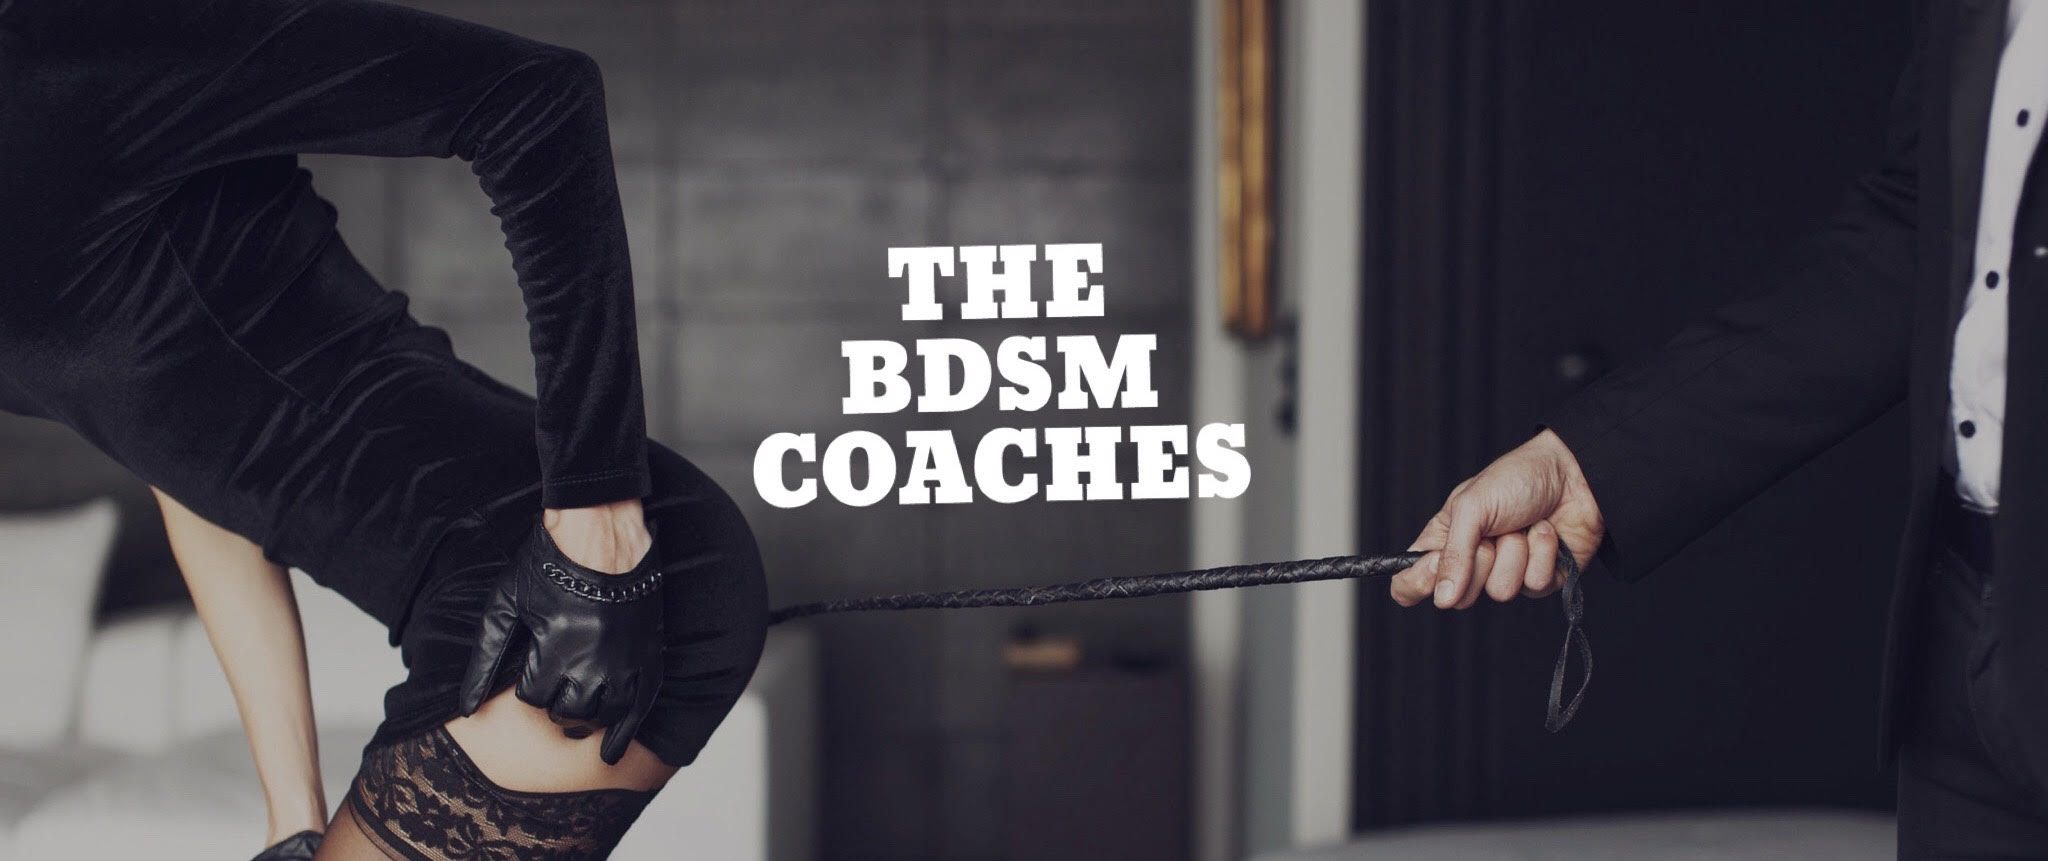 TheBDSMCoaches_5